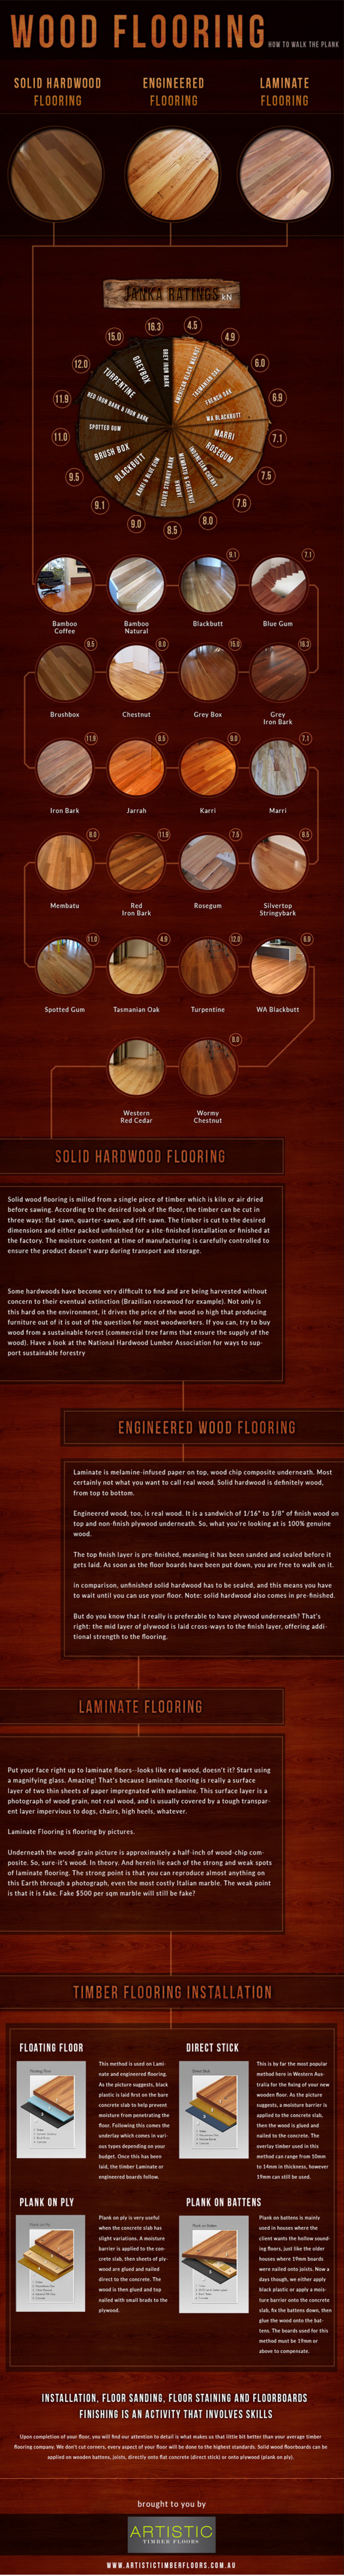 Wood flooring: How to Walk the Plank Infographic